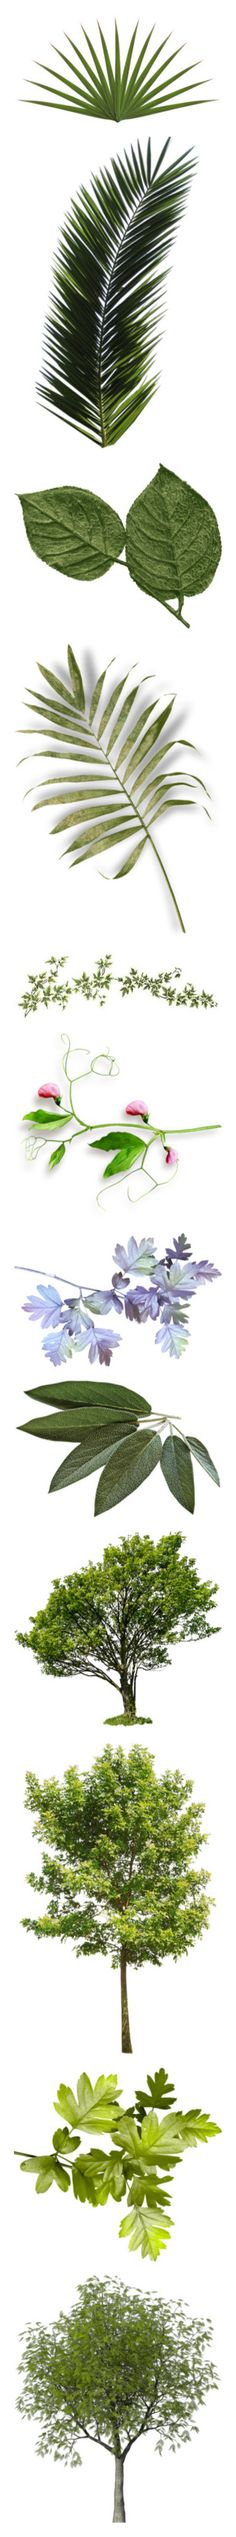 """""""Branches, Leaves, Vines,&Foliage(3): Variety"""" by emalenf ❤ liked on Polyvore featuring flowers, plants, fillers, backgrounds, leaves, effects, fotki, greenery, detail and embellishment"""